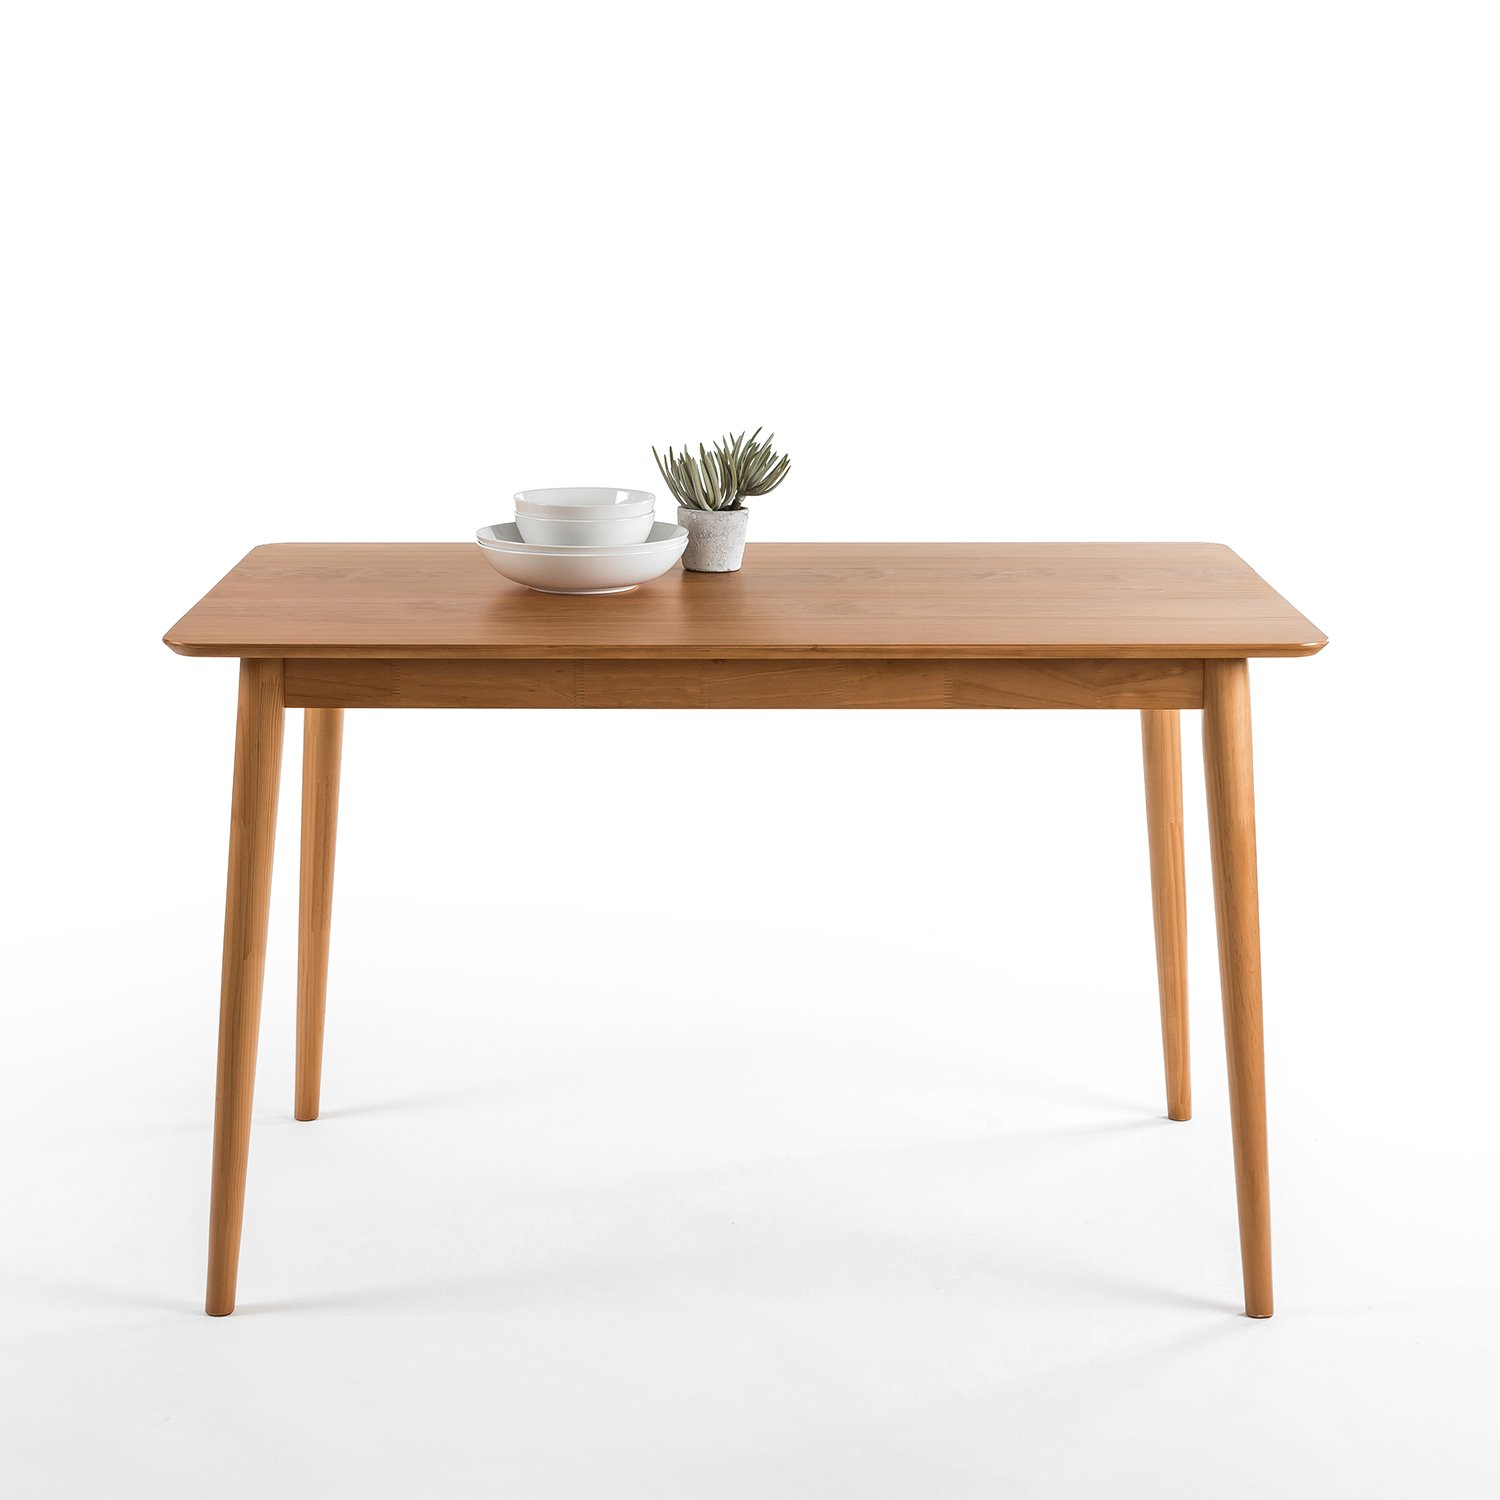 Zinus Jen Mid-Century Modern Wood Dining Table Natural